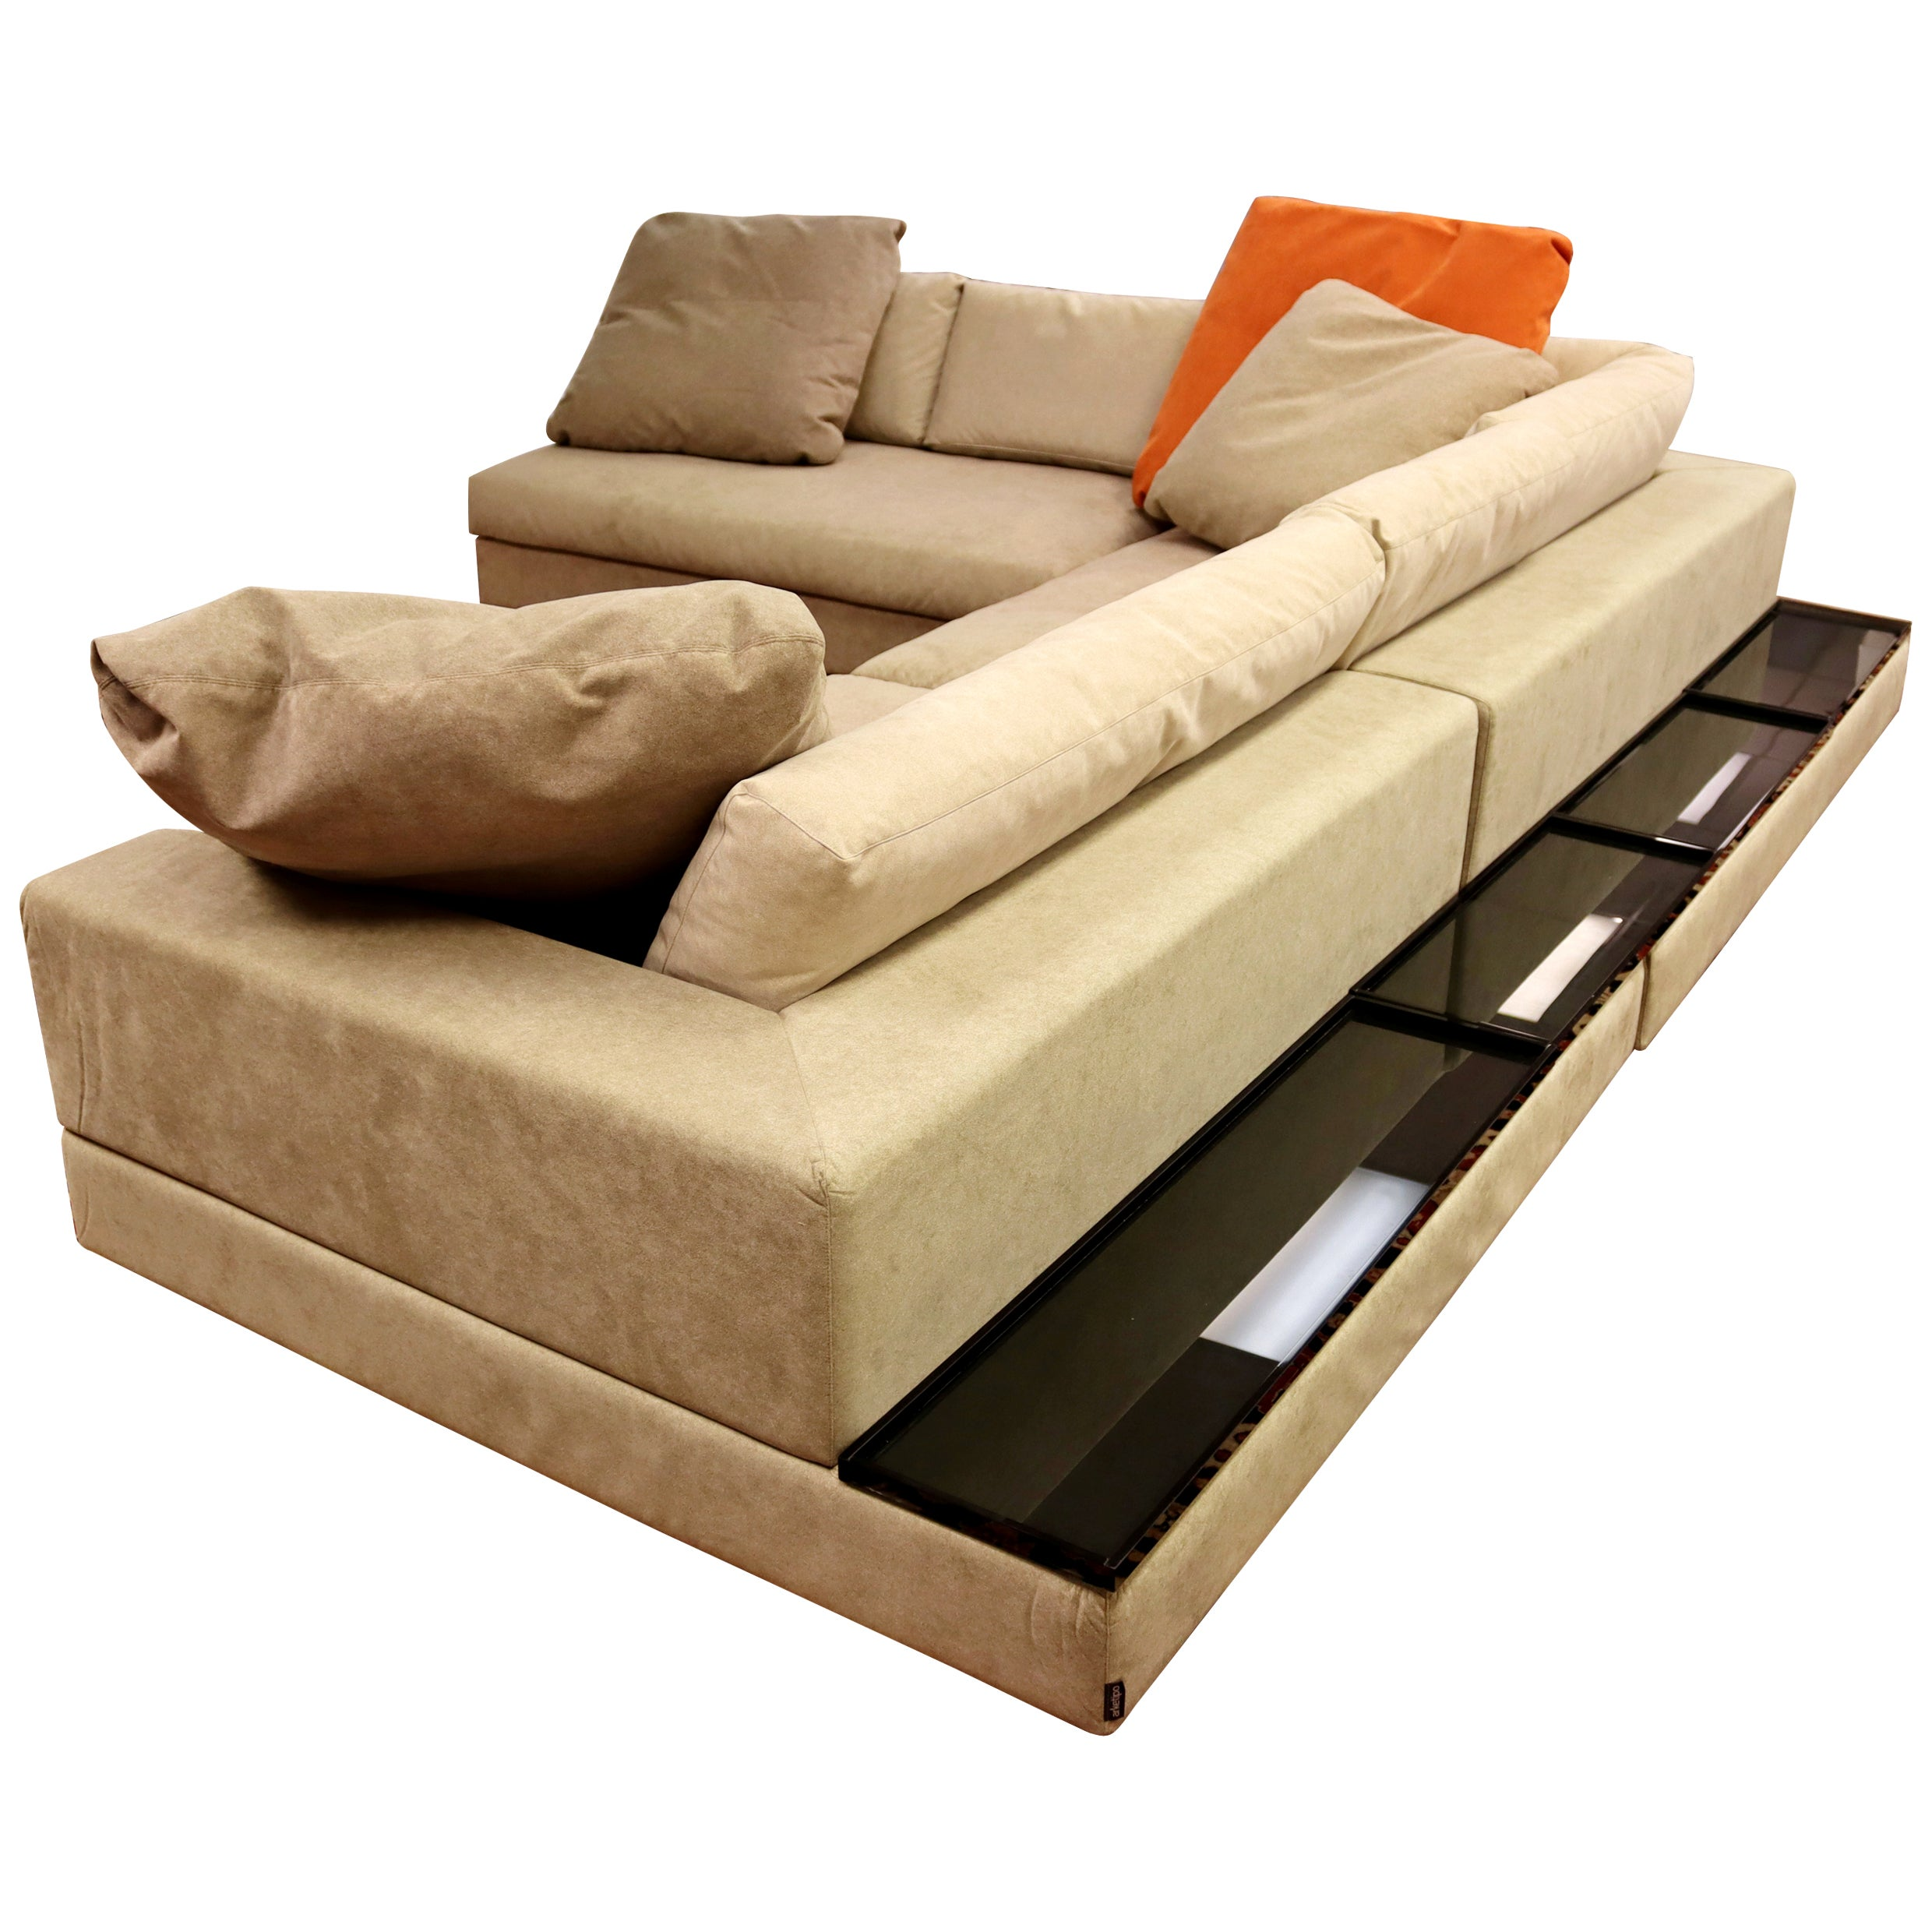 Contemporary Modern Arketipo Large L Shape 3 Piece Sectional Sofa, Italy, 1990s